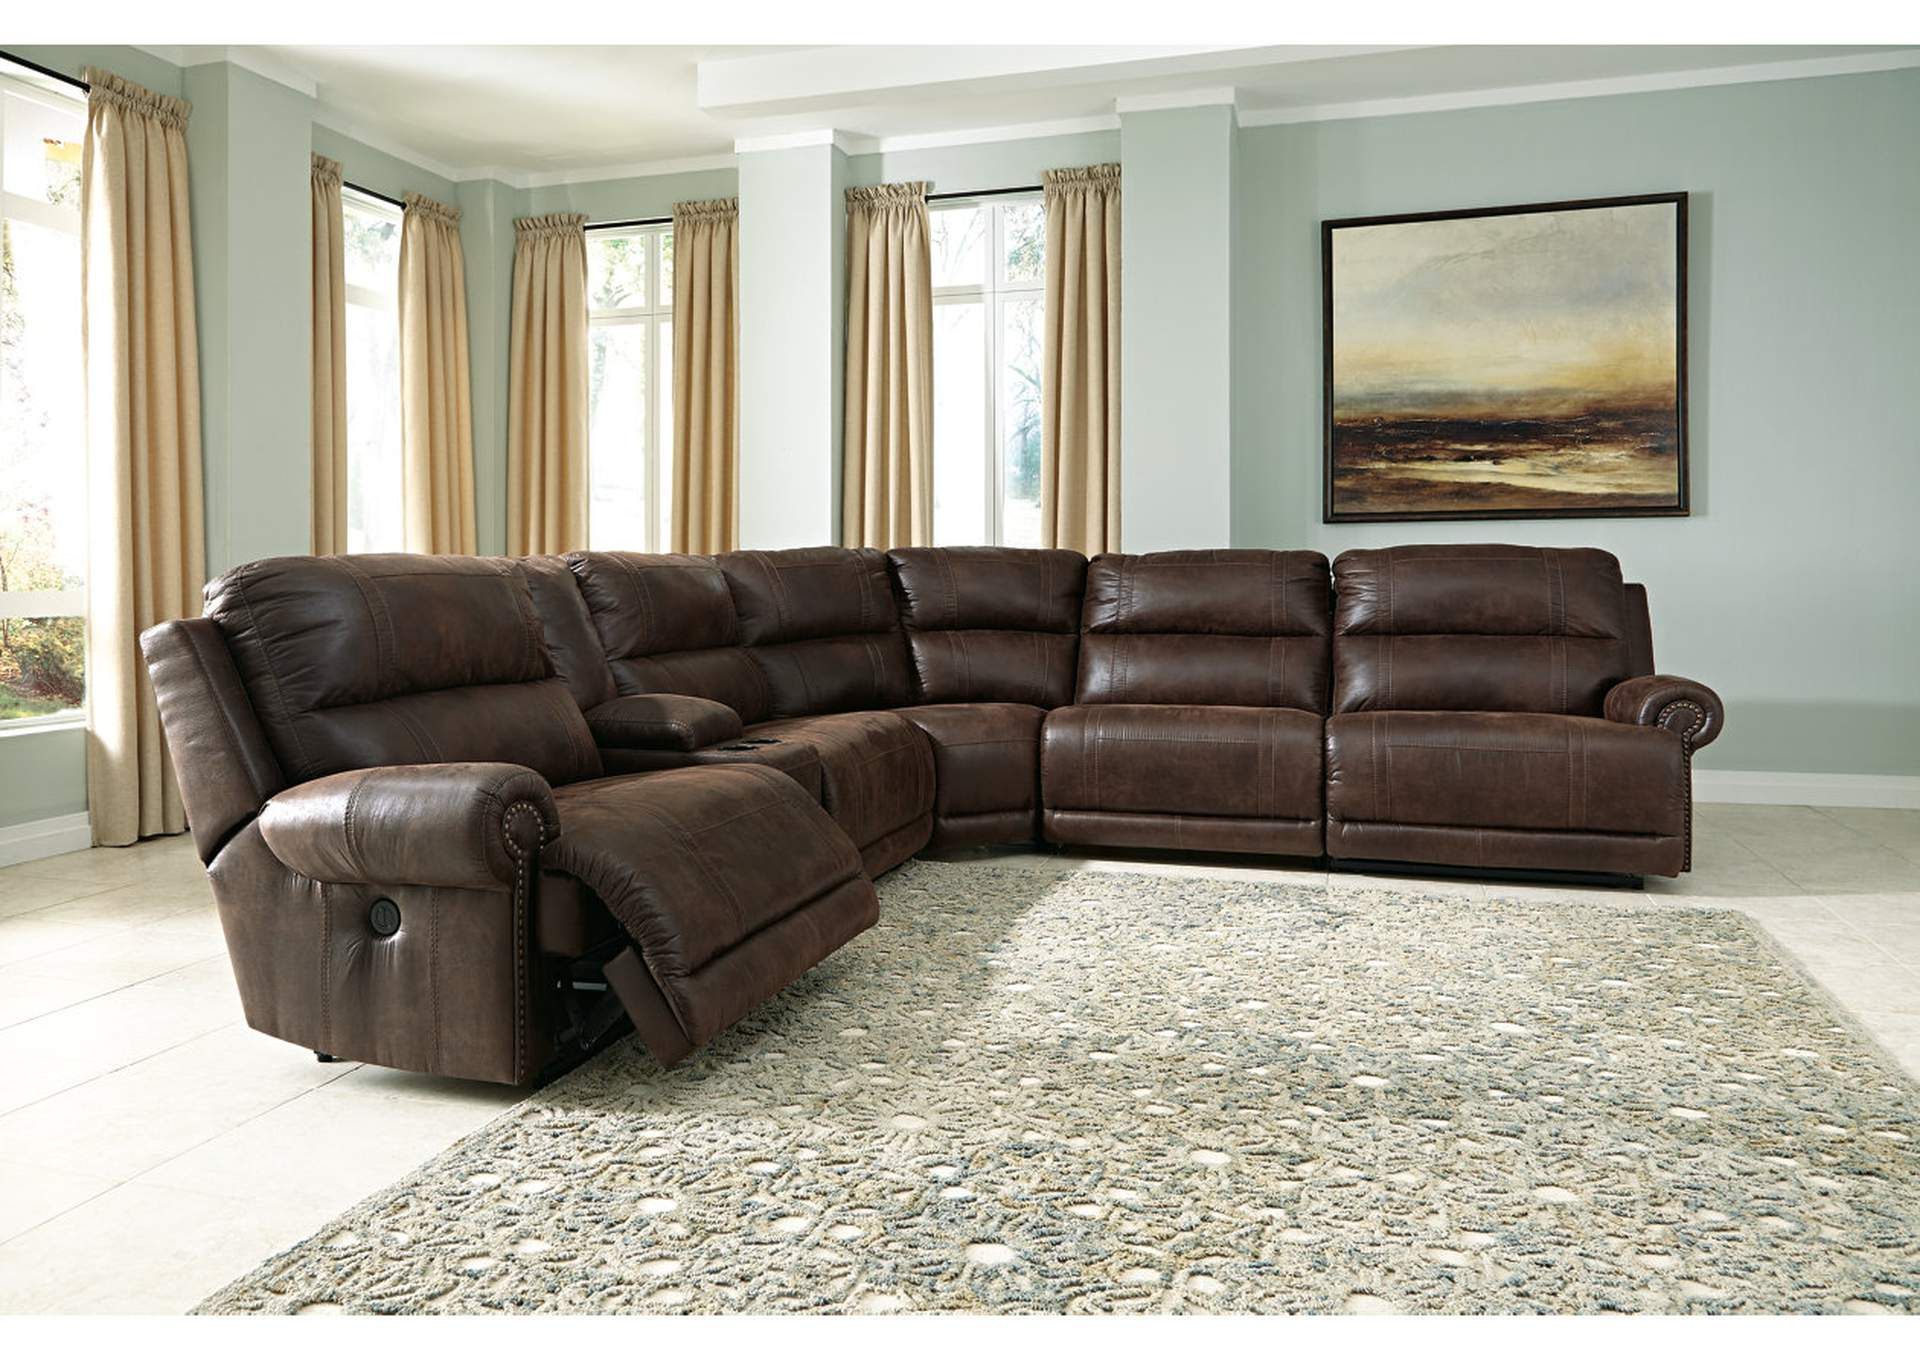 Luttrell Espresso Zero Wall Reclining Sectional w/Storage Console,Signature Design By Ashley